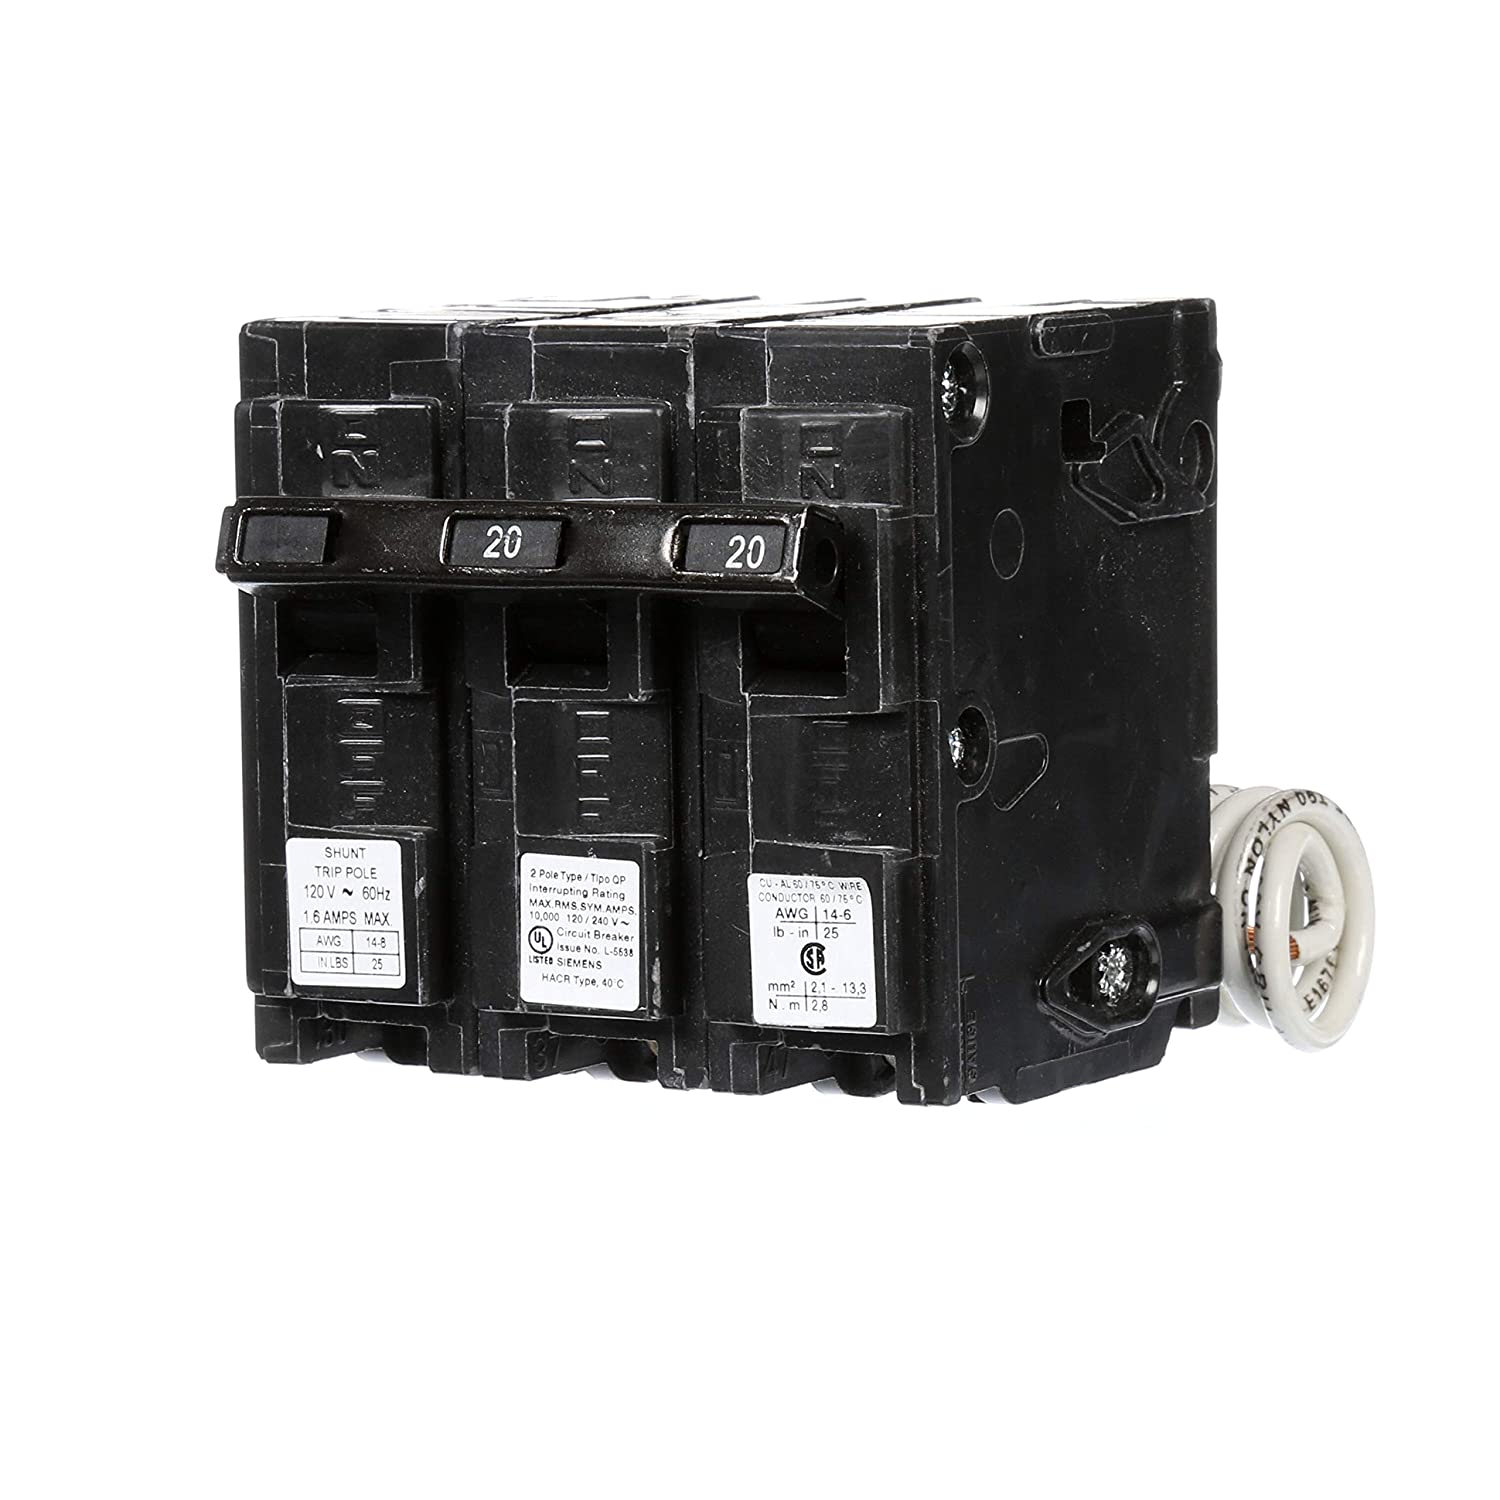 Siemens Q22000s01 120240 Volt Type Mp T 20 Amp Circuit Breaker With